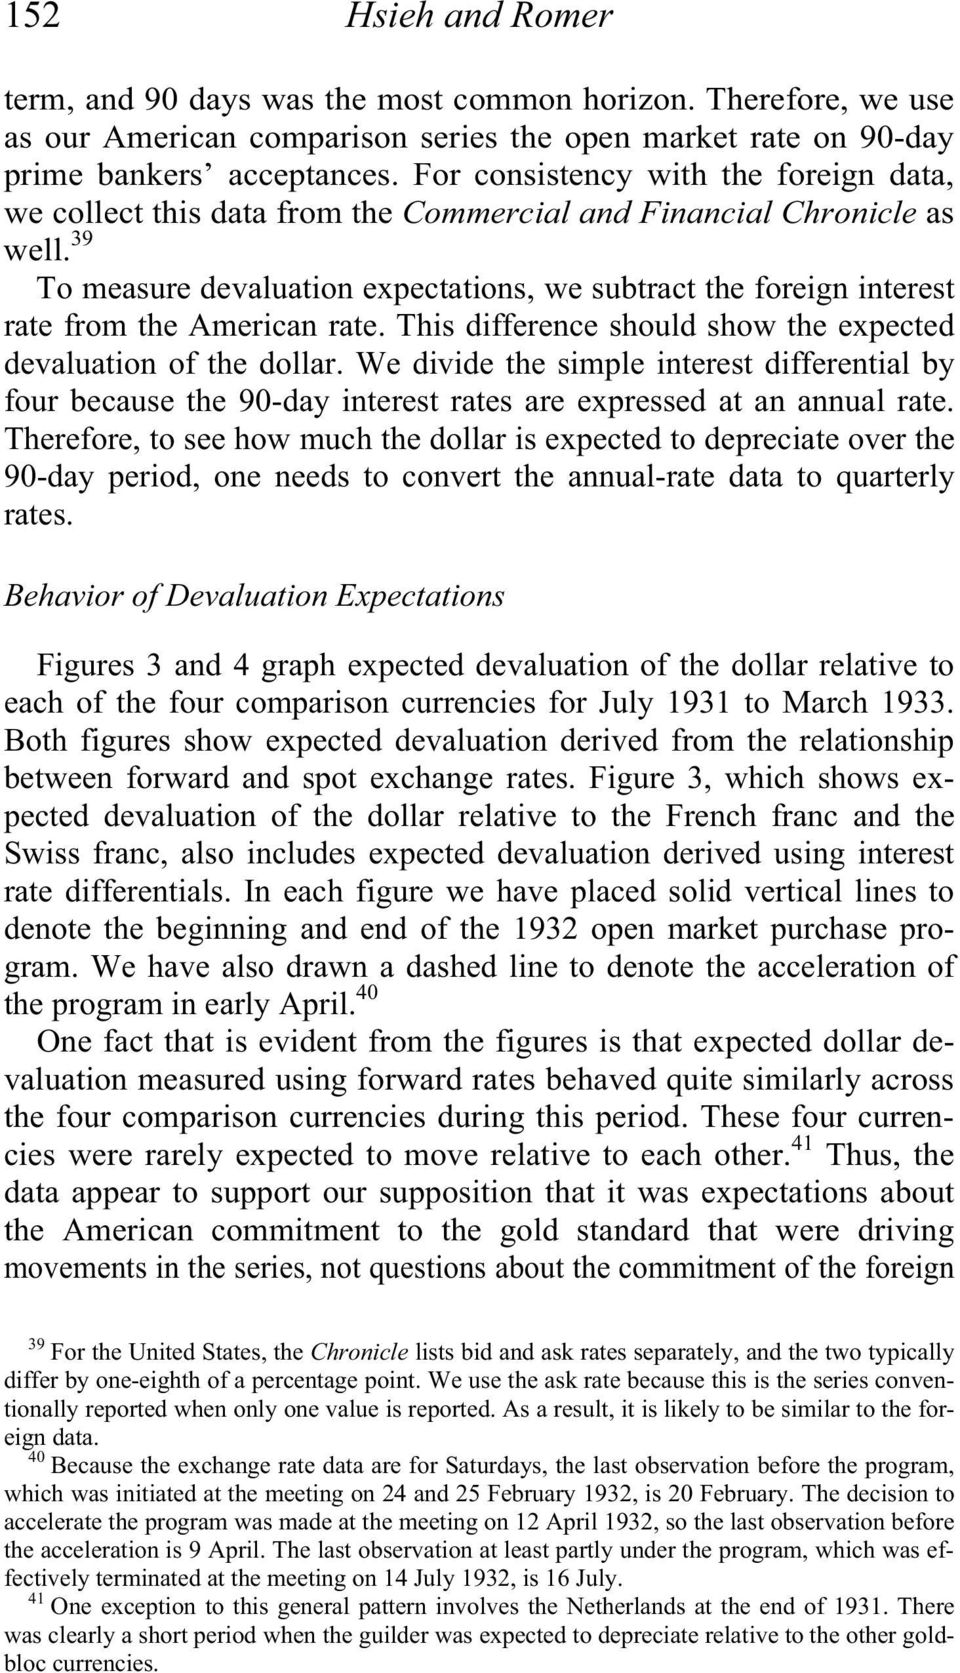 39 To measure devaluation expectations, we subtract the foreign interest rate from the American rate. This difference should show the expected devaluation of the dollar.